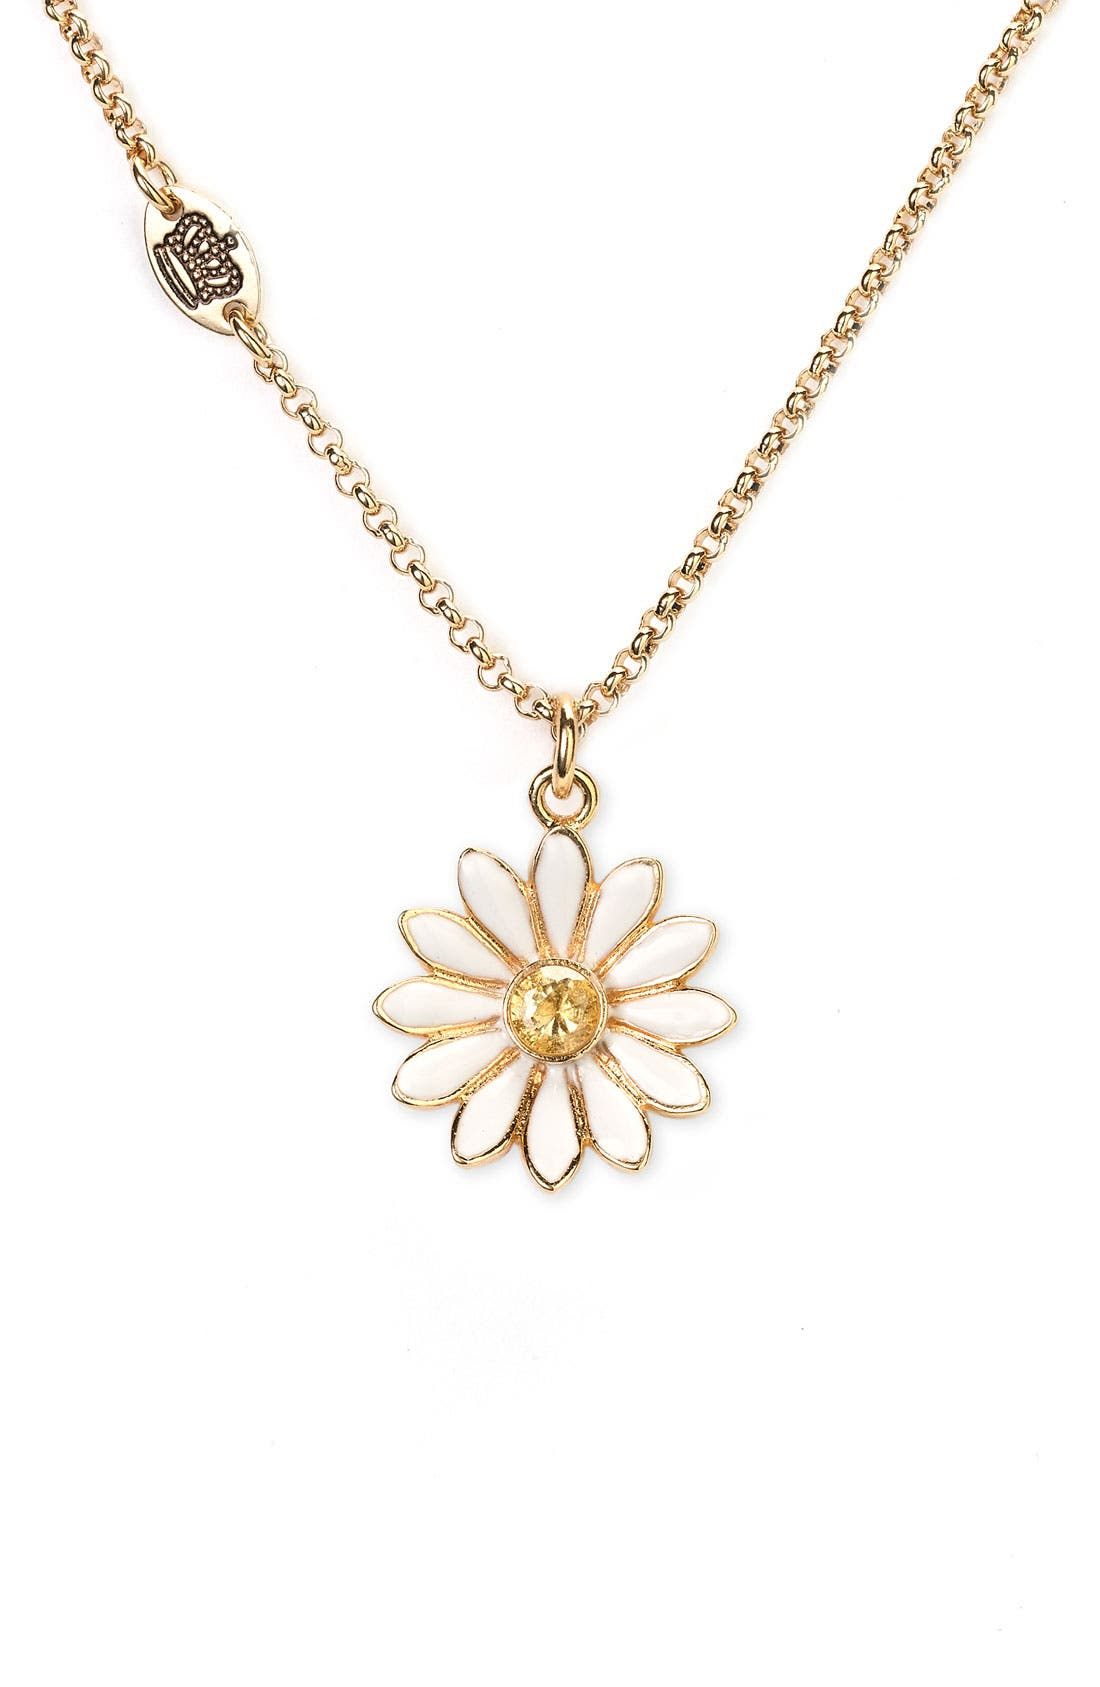 Main Image - Juicy Couture 'Wish - Daisy' Necklace